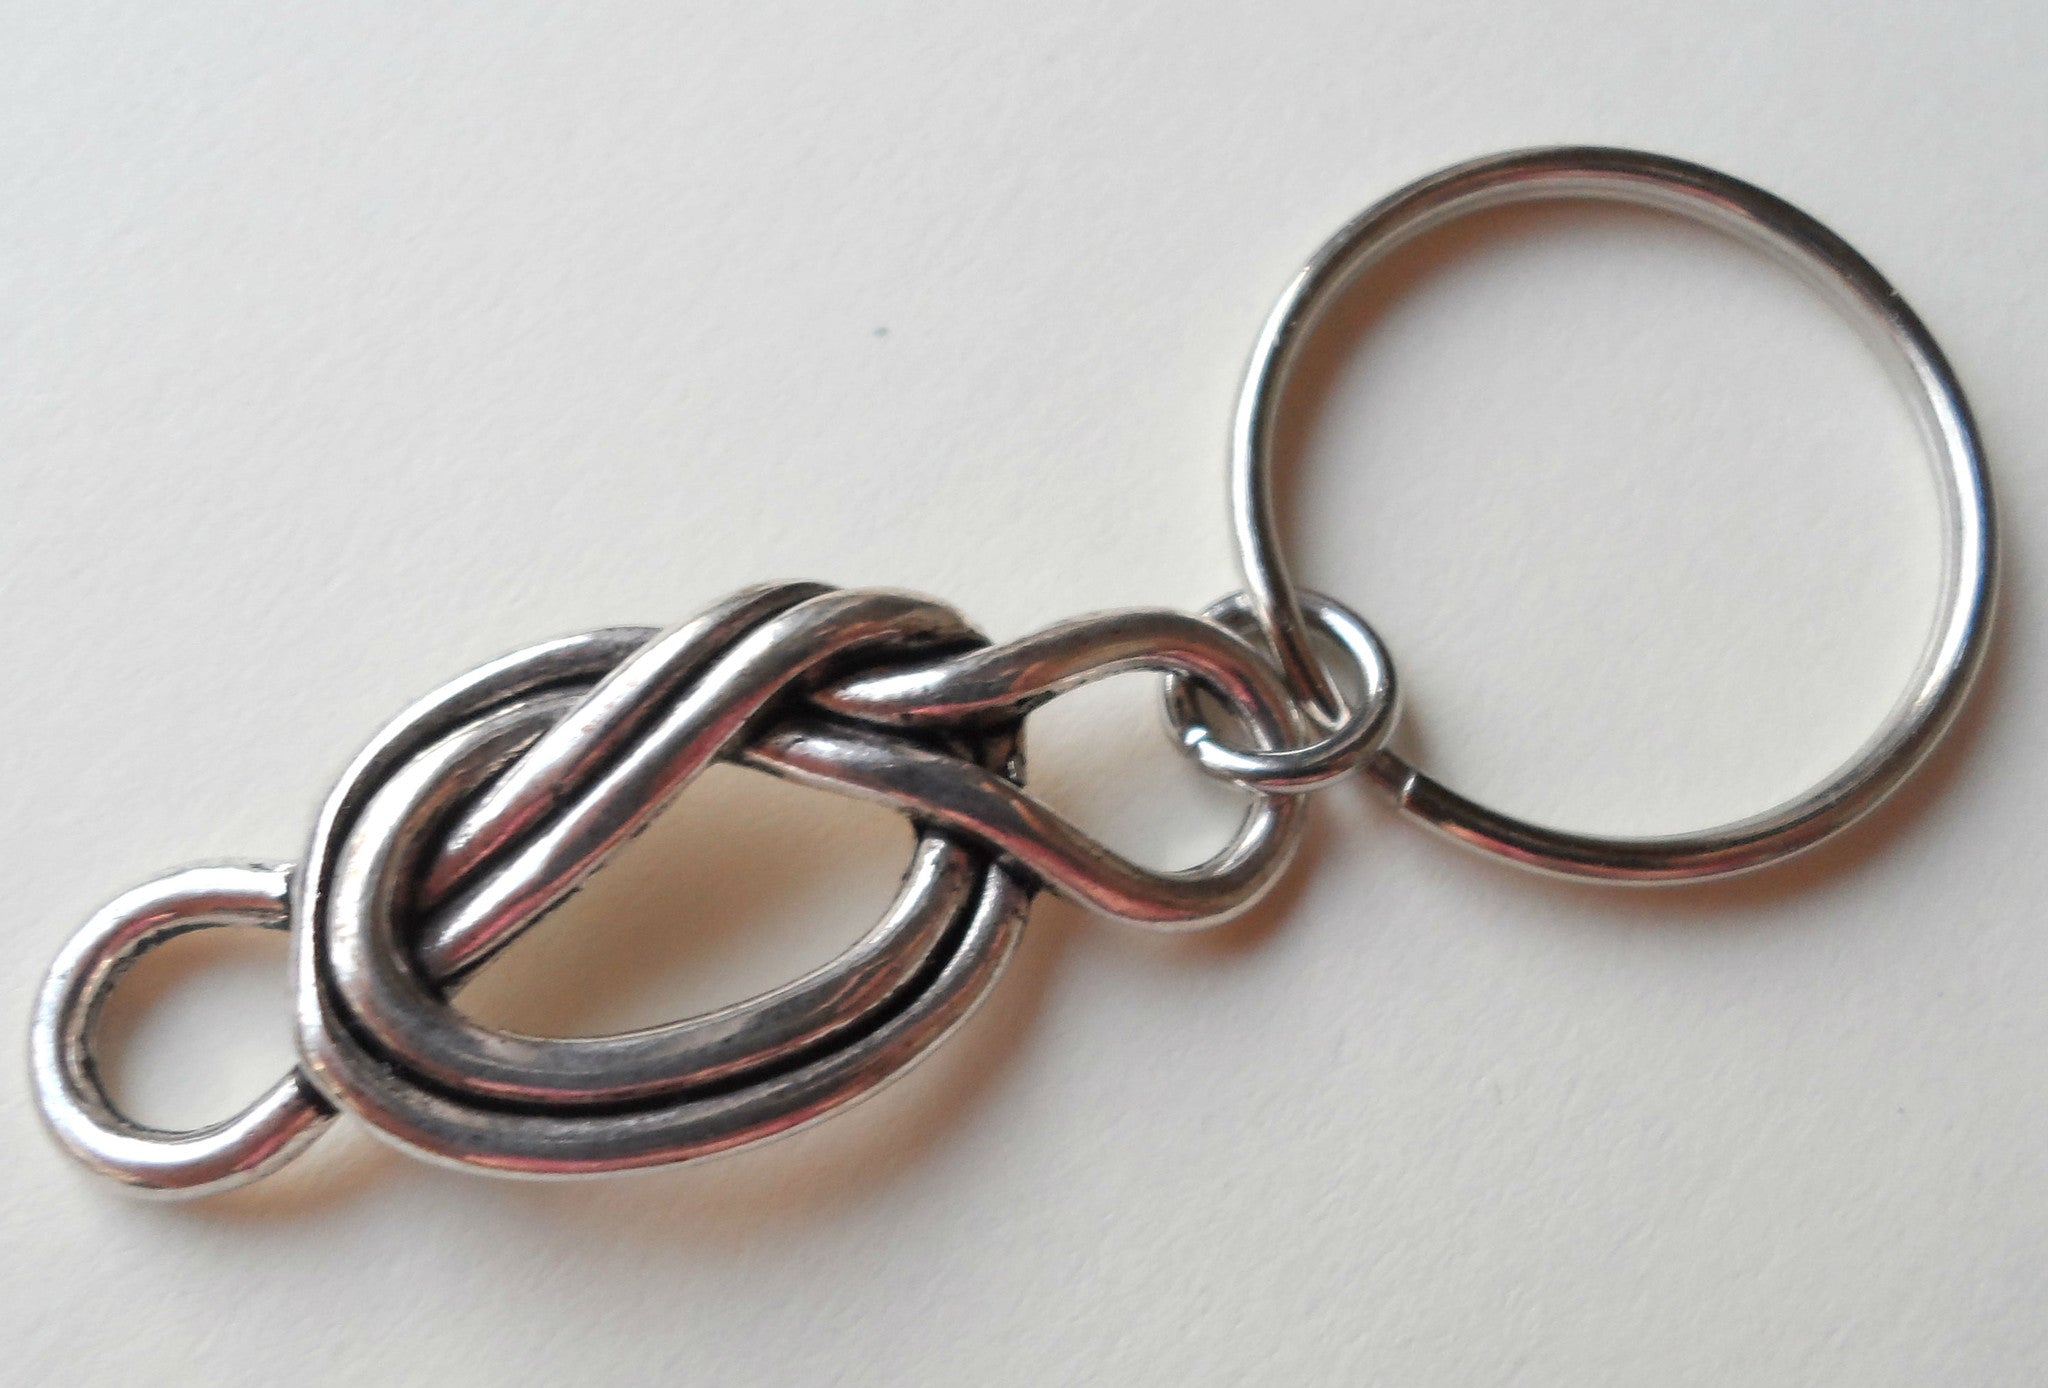 Thanks for Helping Us Tie the Knot Keychain – JewelryEveryday